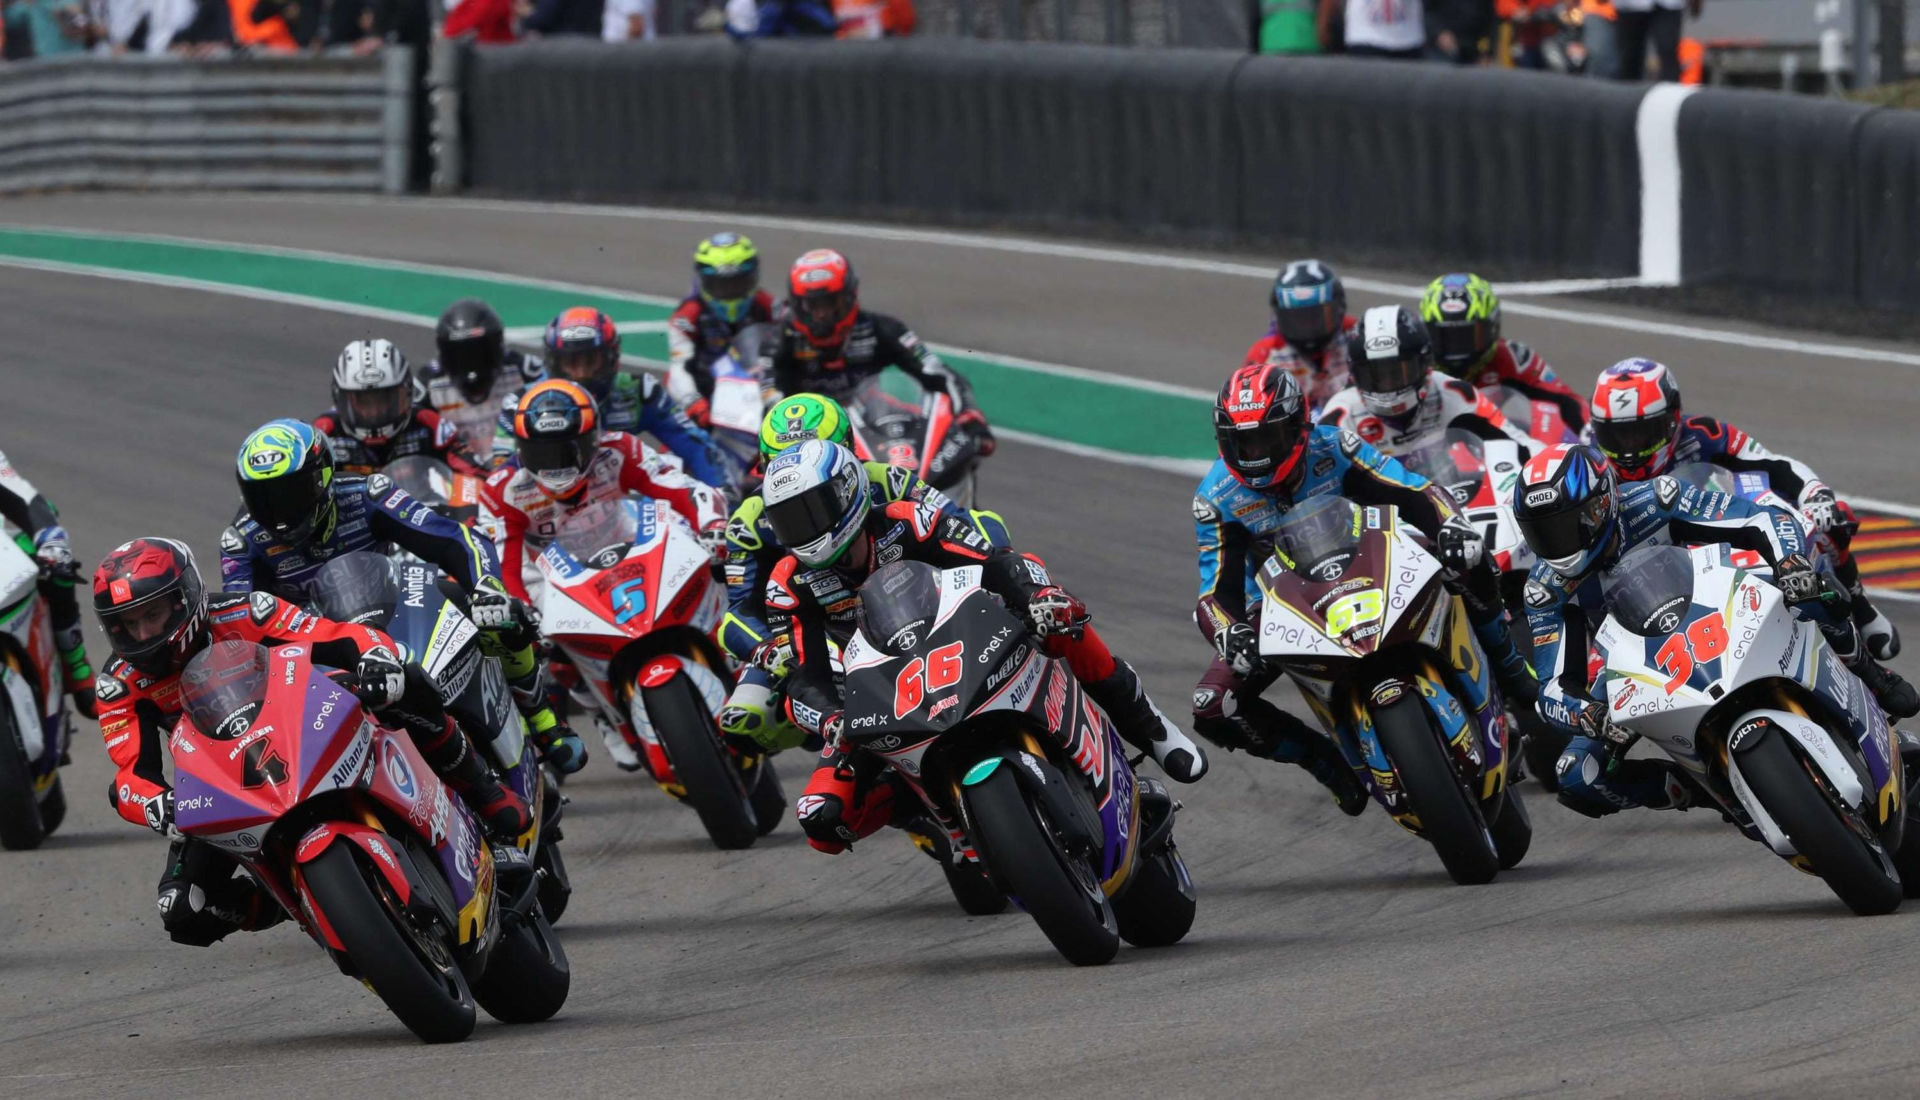 The start of the MotoE race at Sachsenring. Photo courtesy of Dorna.